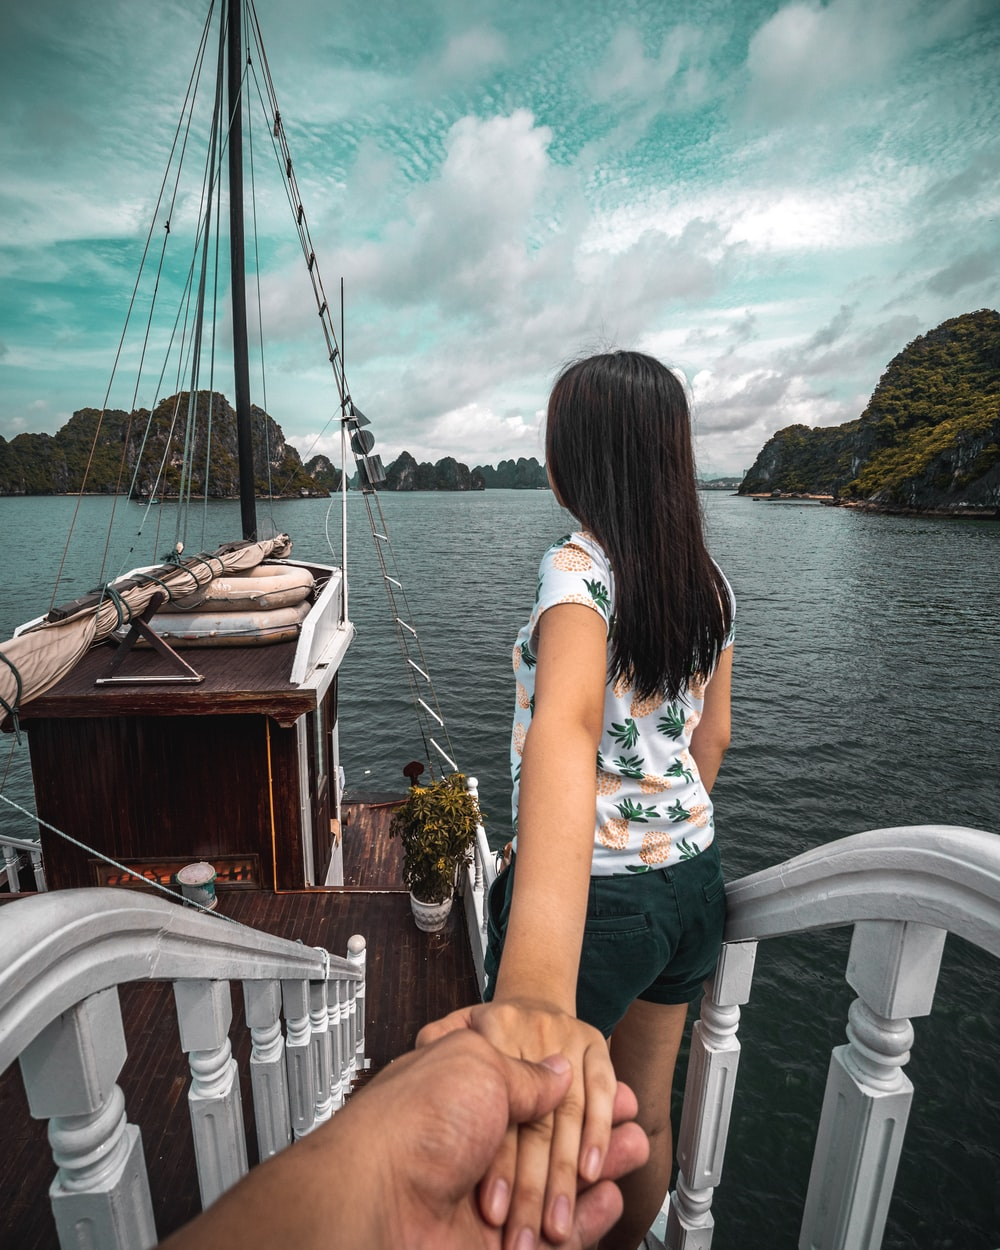 person holding woman's hand looking at body of water under cloudy sky